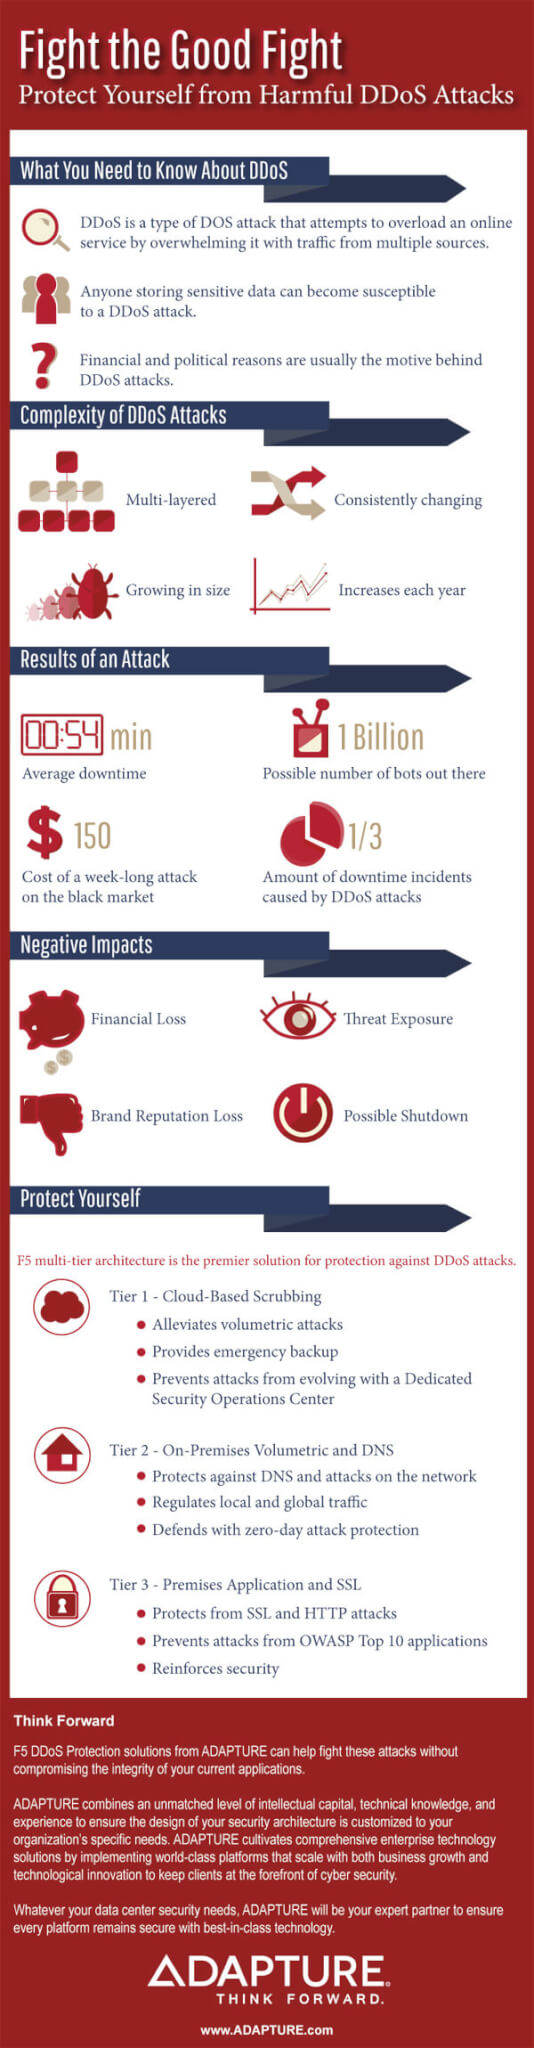 ddos infographic  protection from ddos harmful attacks